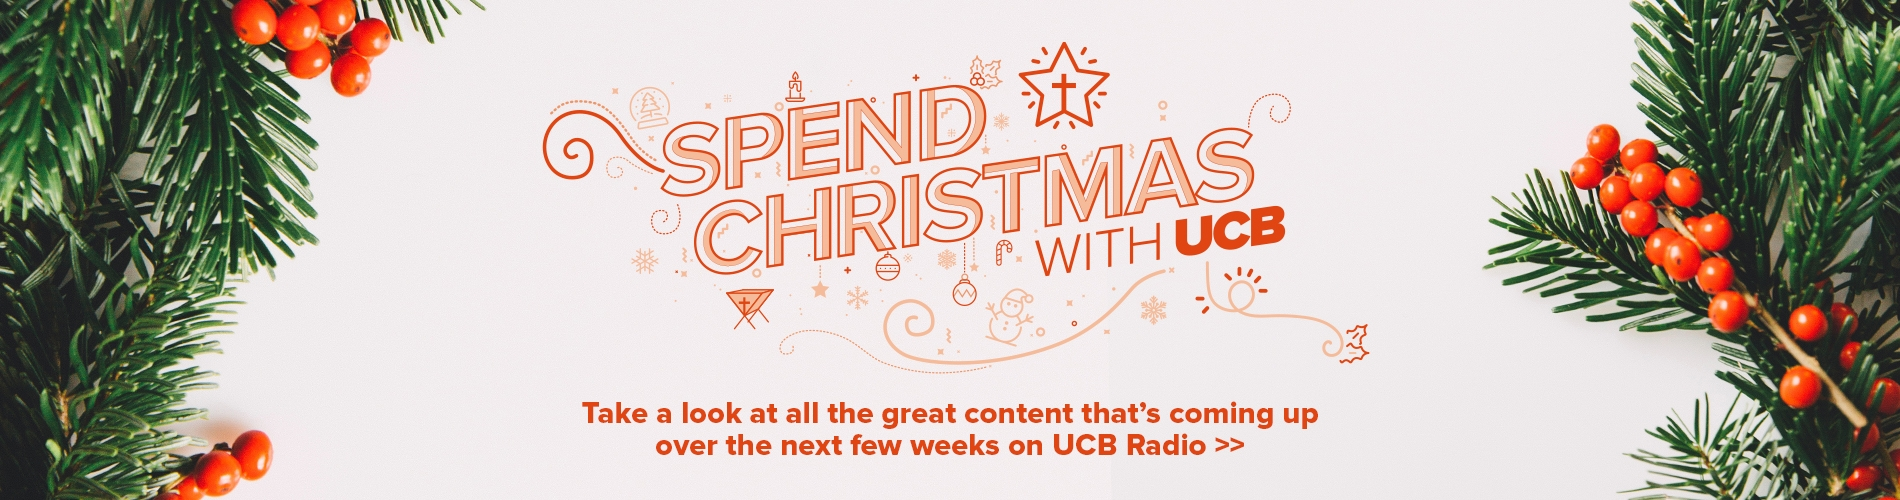 Take a look at all the great content that's coming up  over the next few weeks on UCB Radio >>